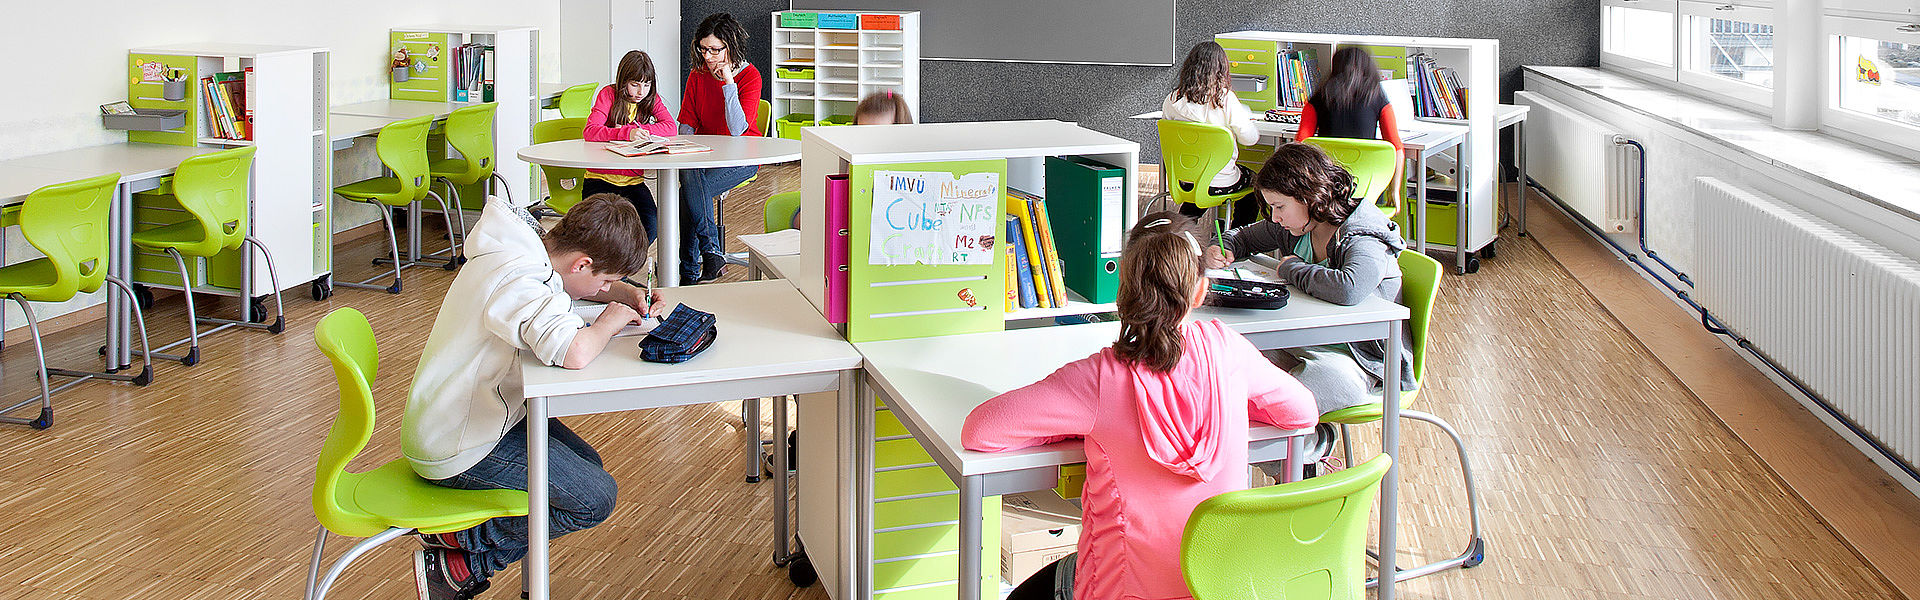 Learning room with flexible furniture